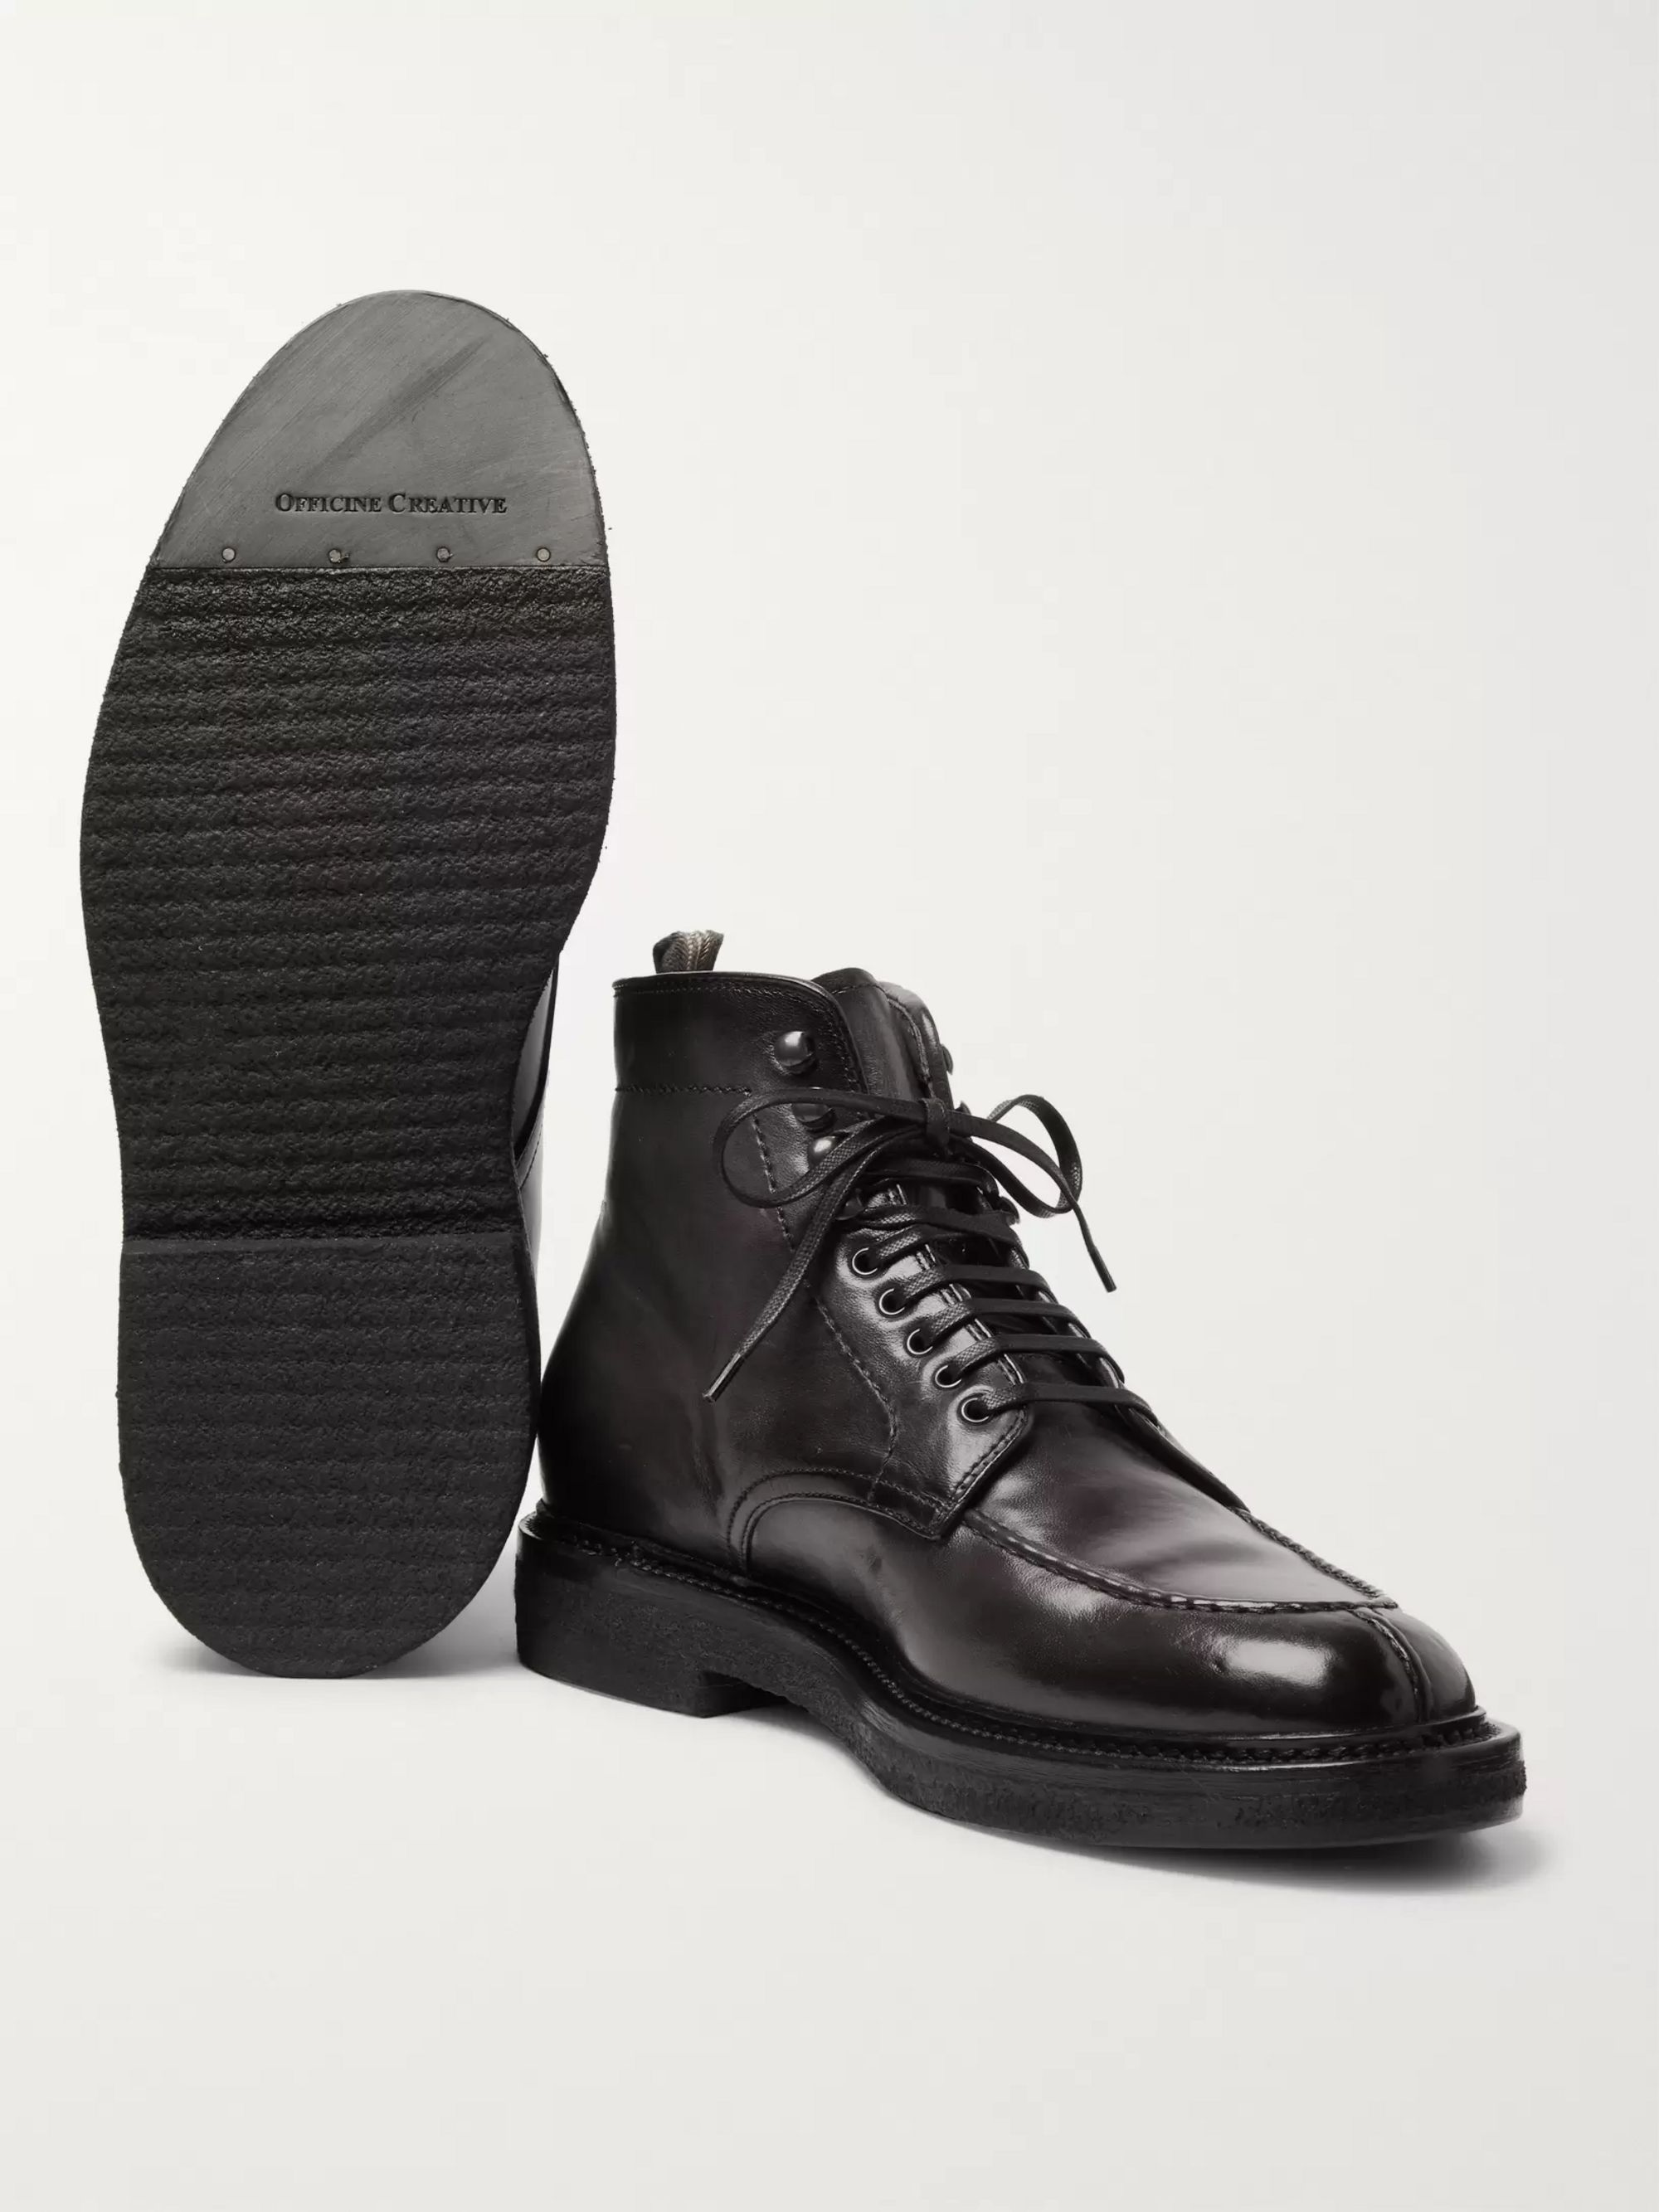 Officine Creative Stanford Leather Boots